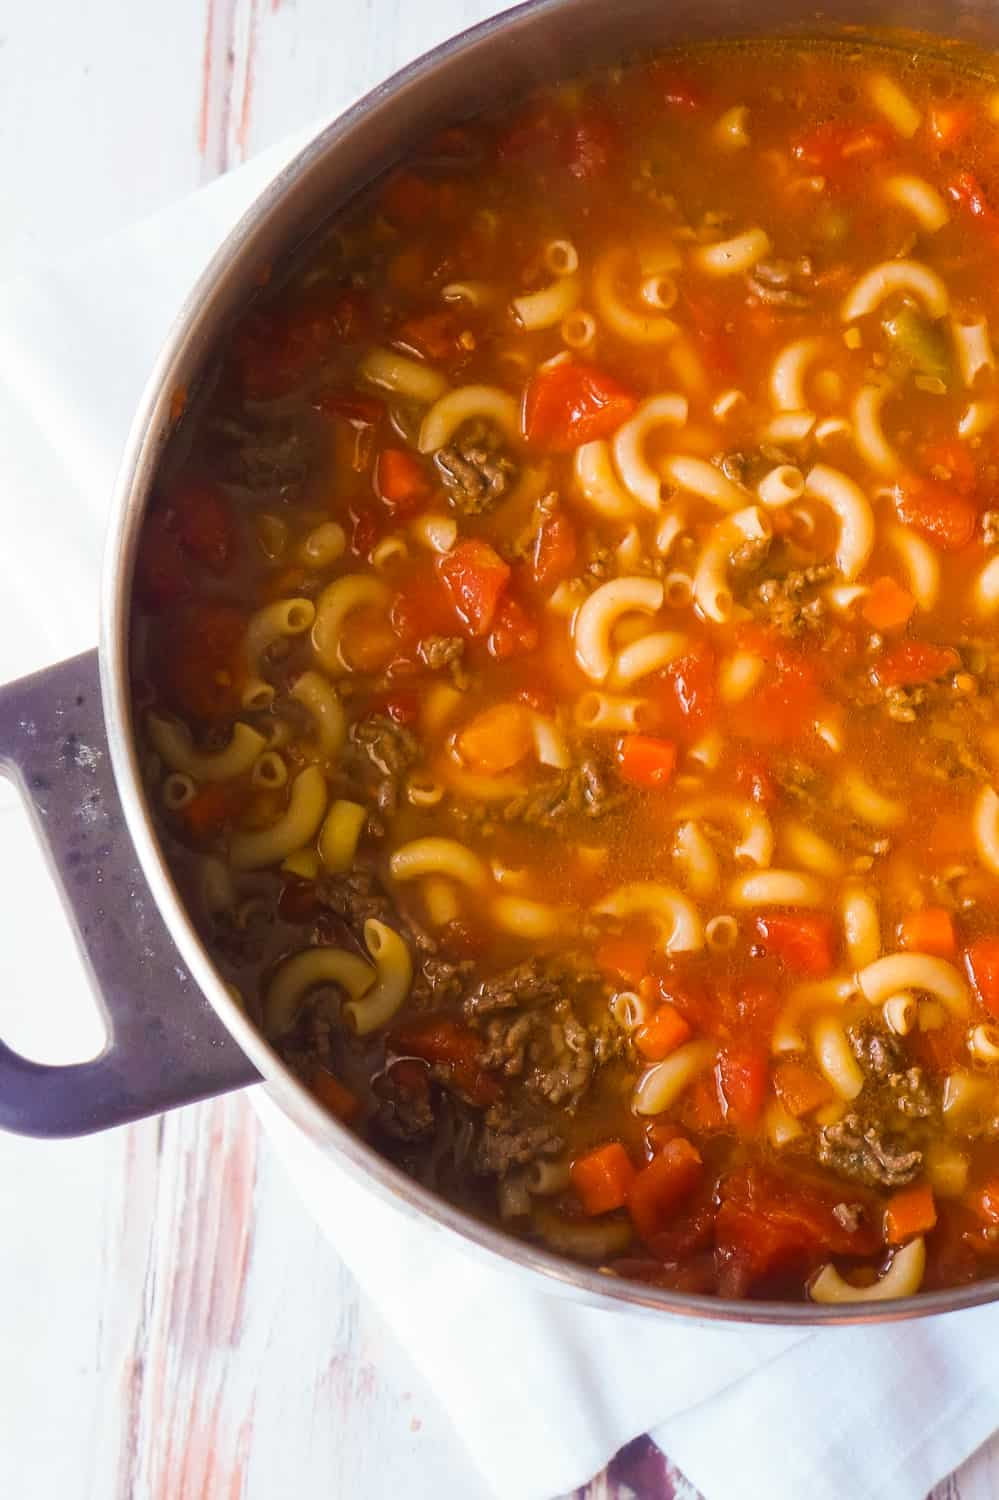 Easy Hamburger Soup with Macaroni is a hearty soup recipe that takes just fifteen minutes from start to finish.This delicious soup is loaded with ground beef, diced tomatoes, mixed vegetables and macaroni noodles.